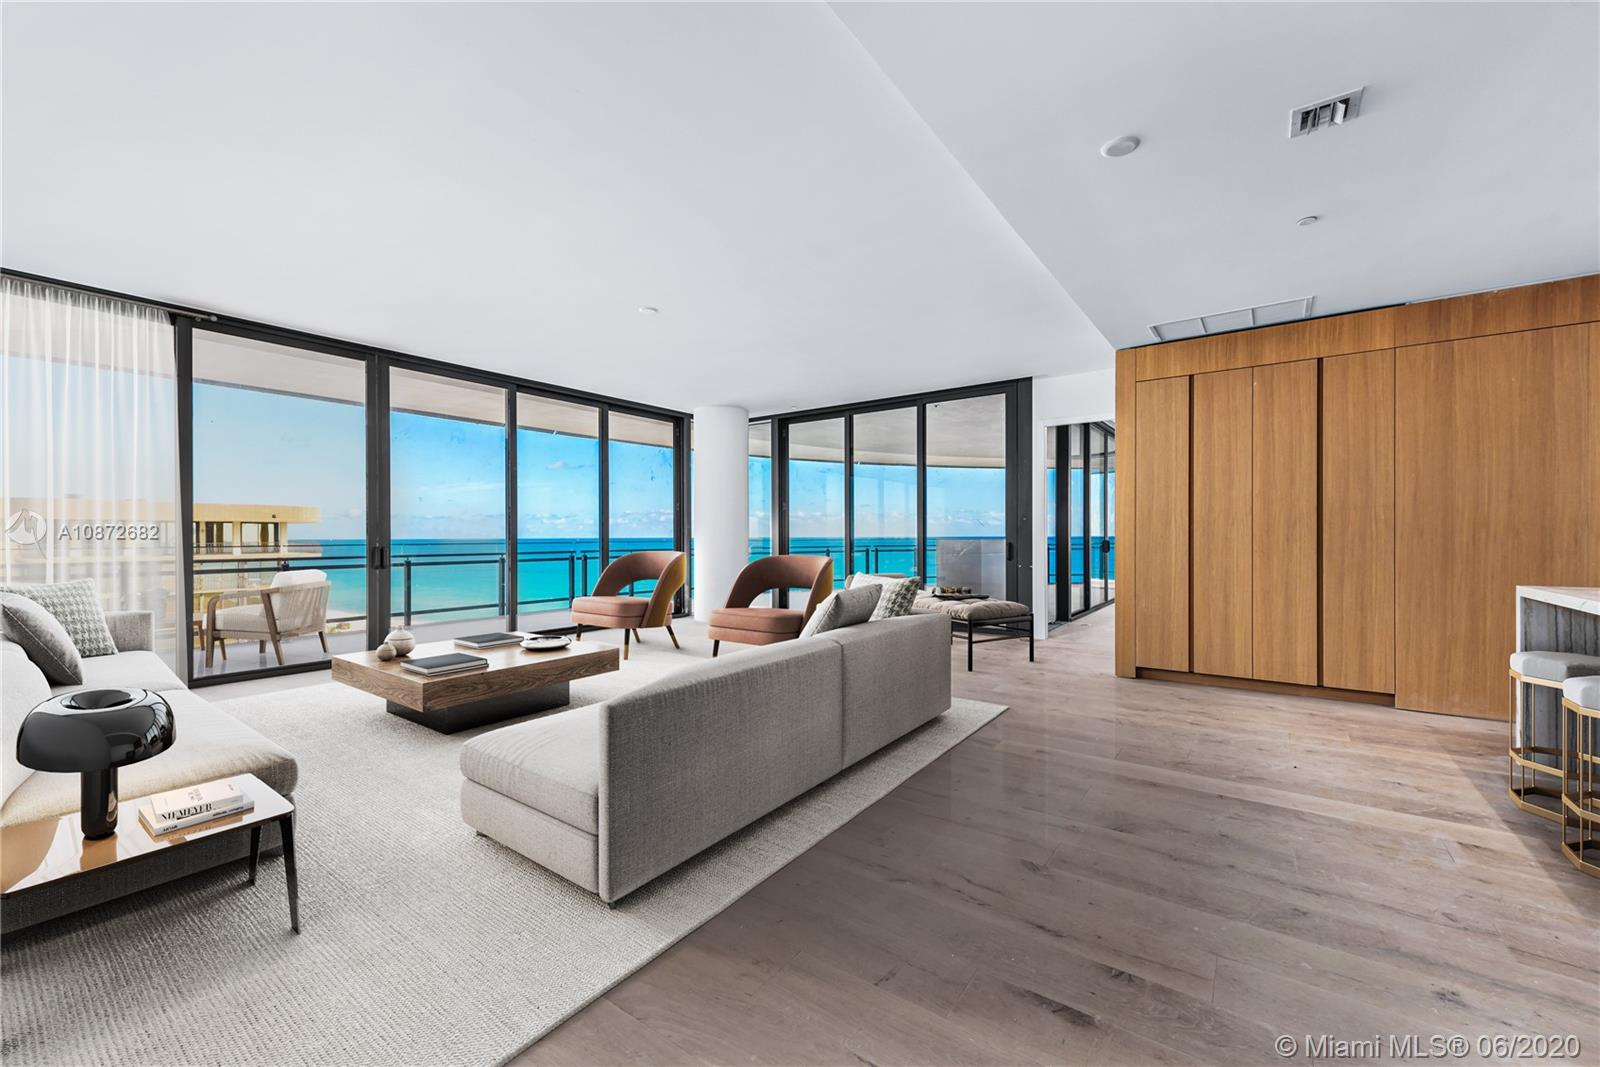 8701 Collins Ave, Unit #1101 Luxury Real Estate